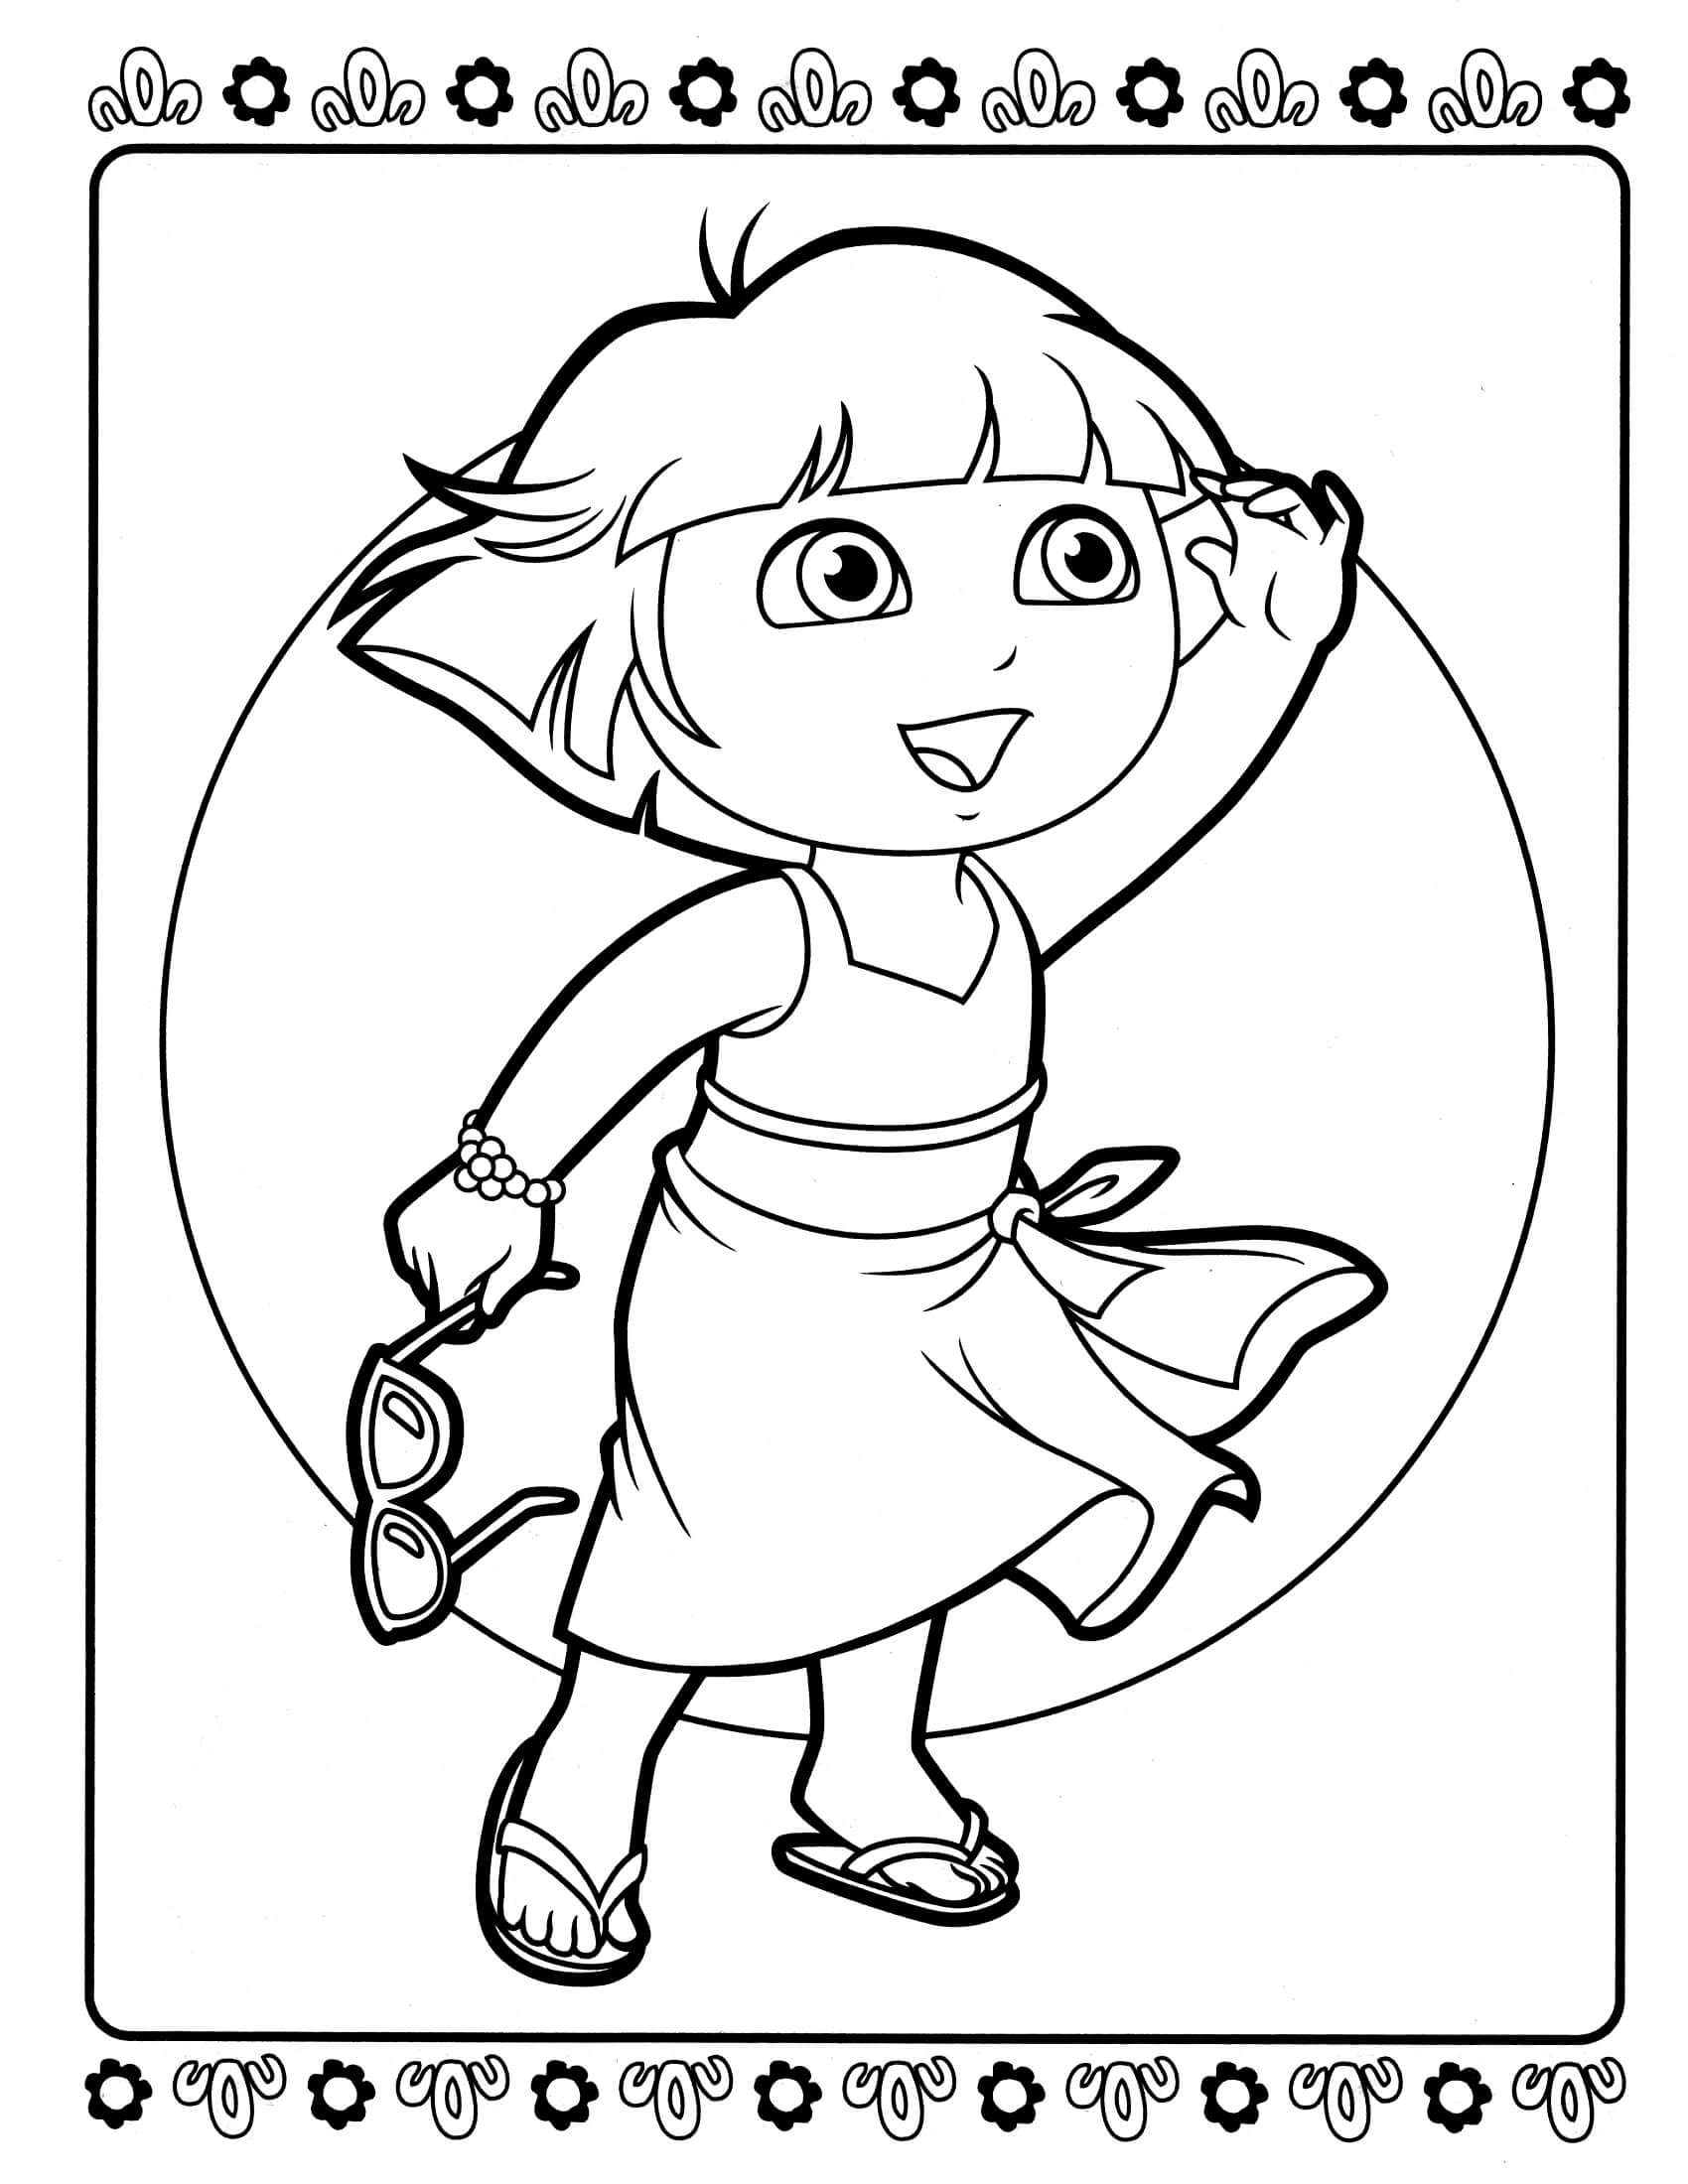 dora colouring pages printable dora map printable printable maps dora pages printable colouring